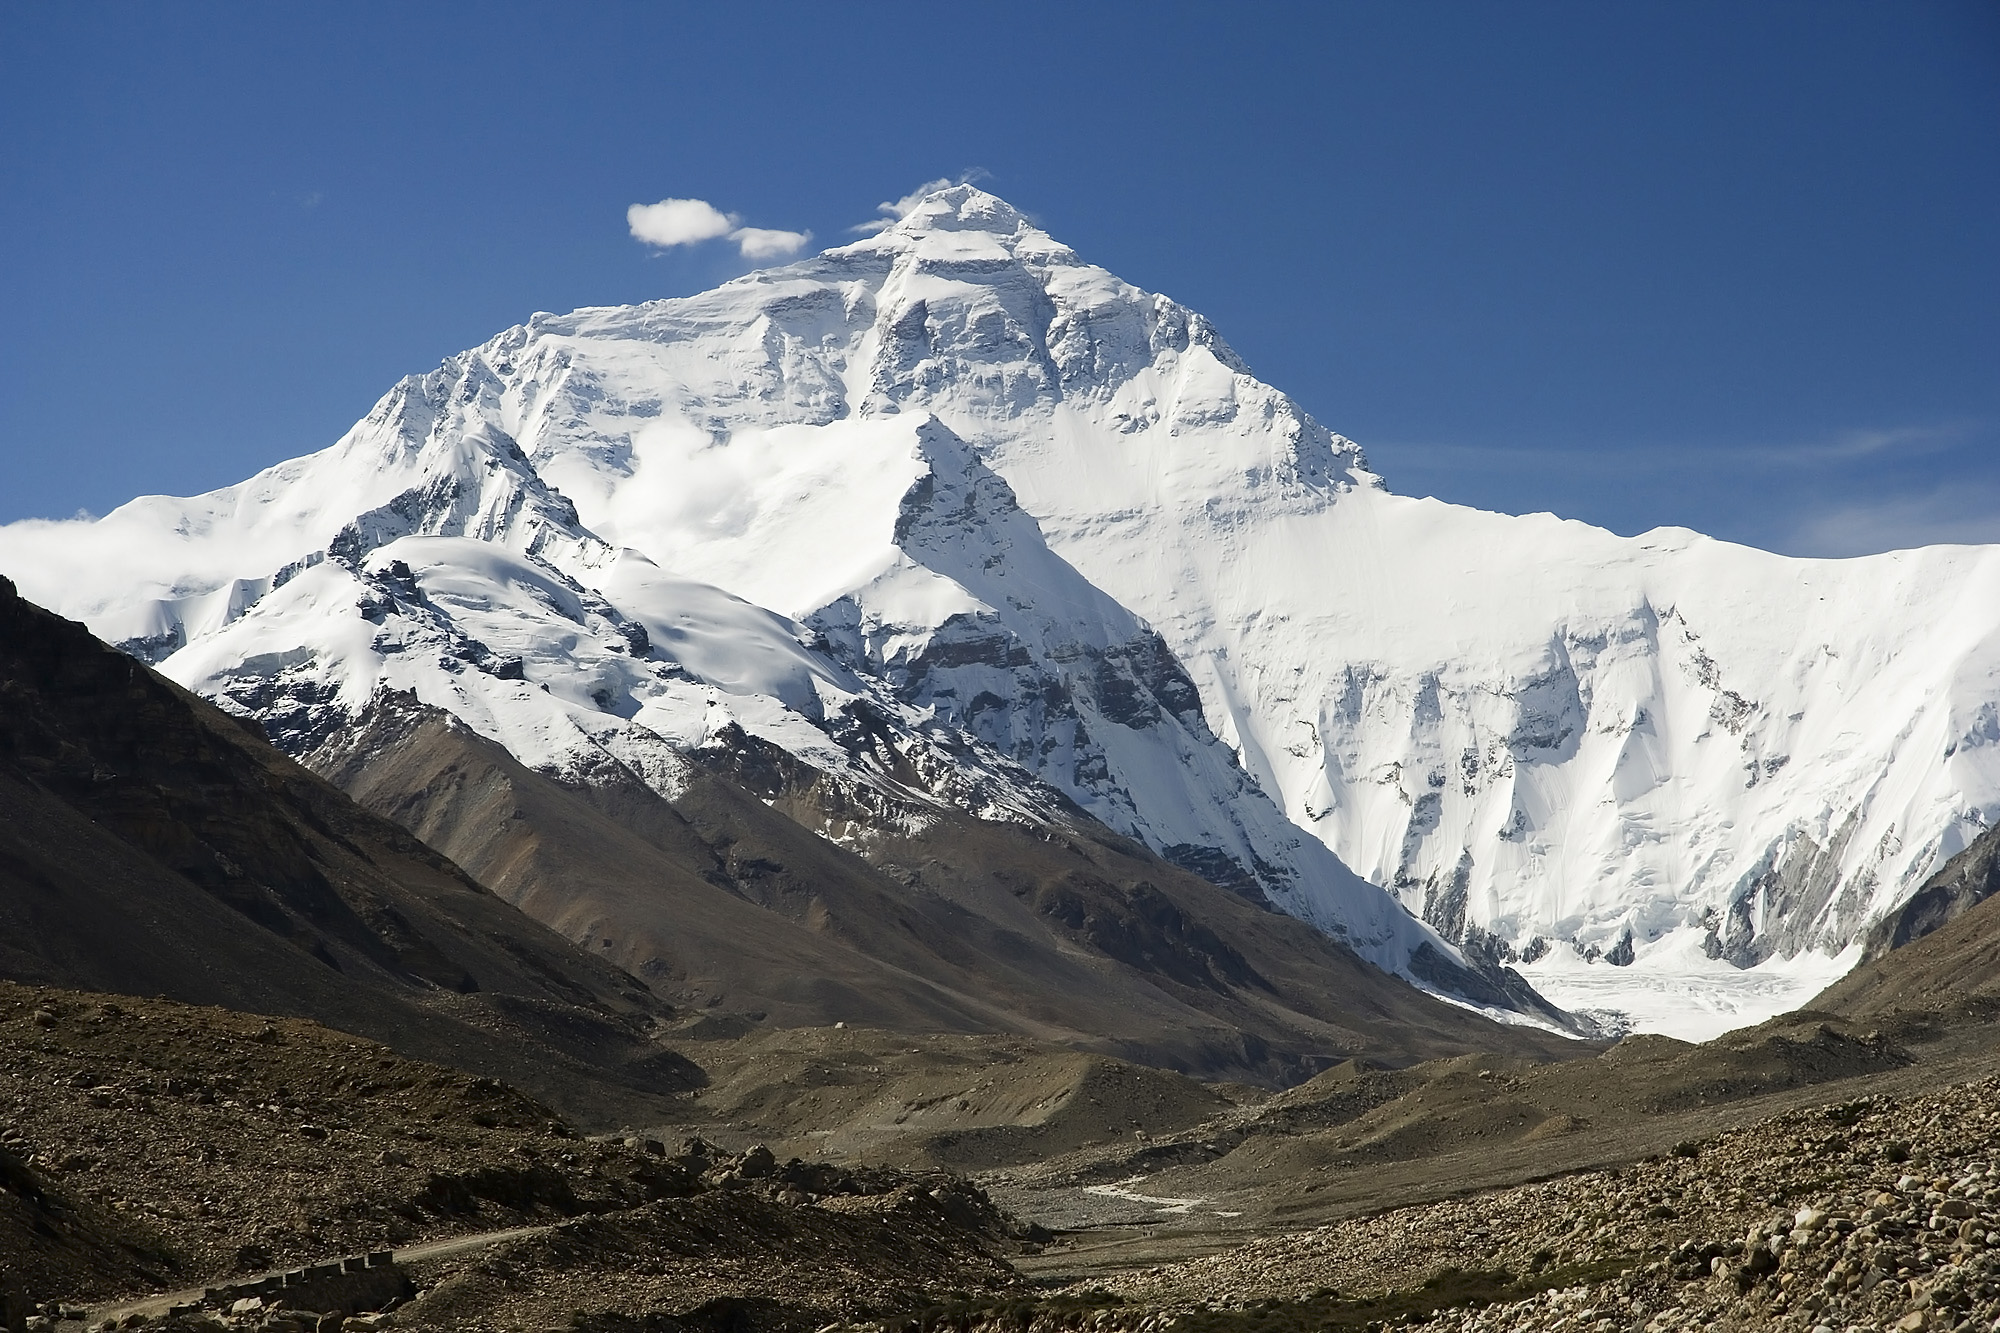 Himalayas. Everest North Face toward Base Camp Tibet Luca Galuzzi 2006 edit 1.jpg